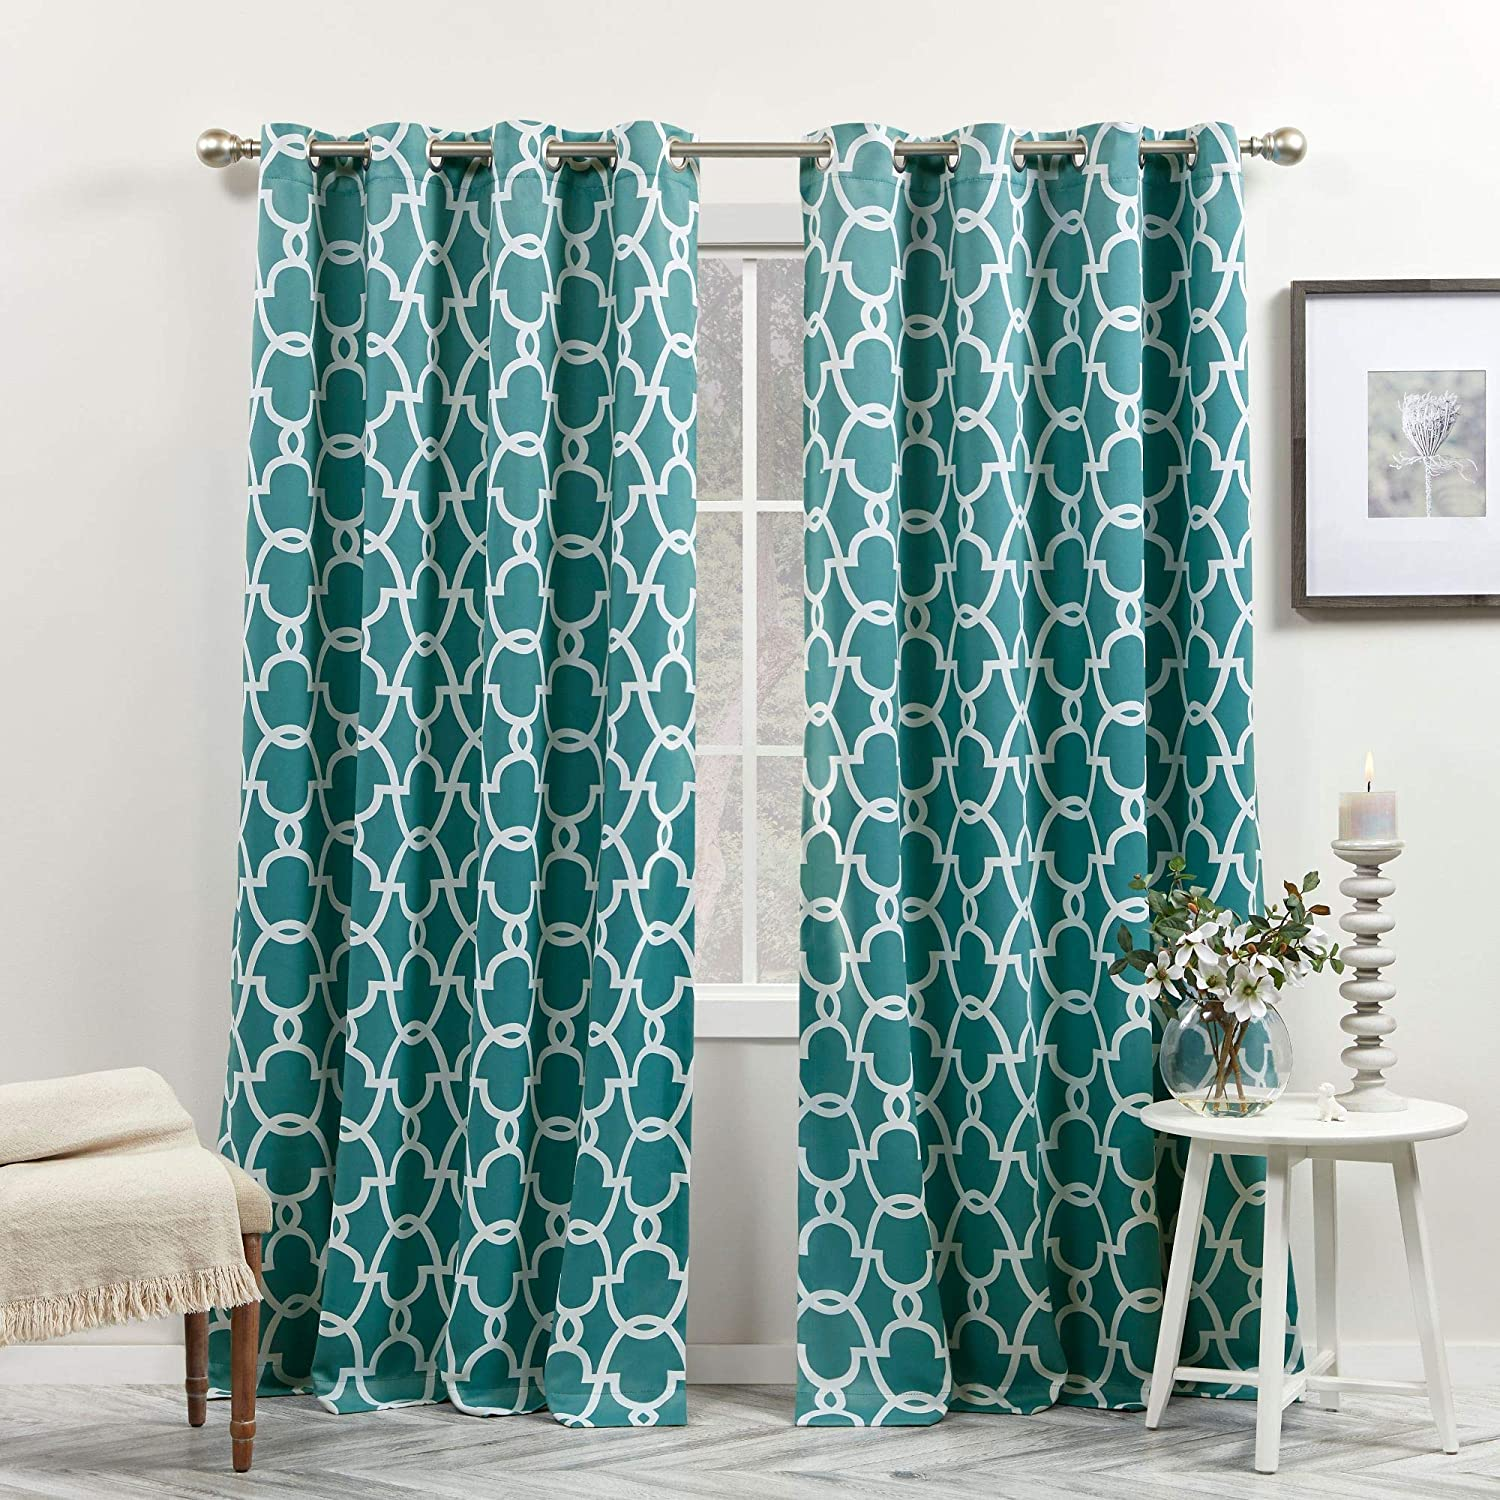 Exclusive Home Curtains Gates Sateen Blackout Thermal Window Curtain Panel Pair with Grommet Top, 52x96, Teal 2 Count